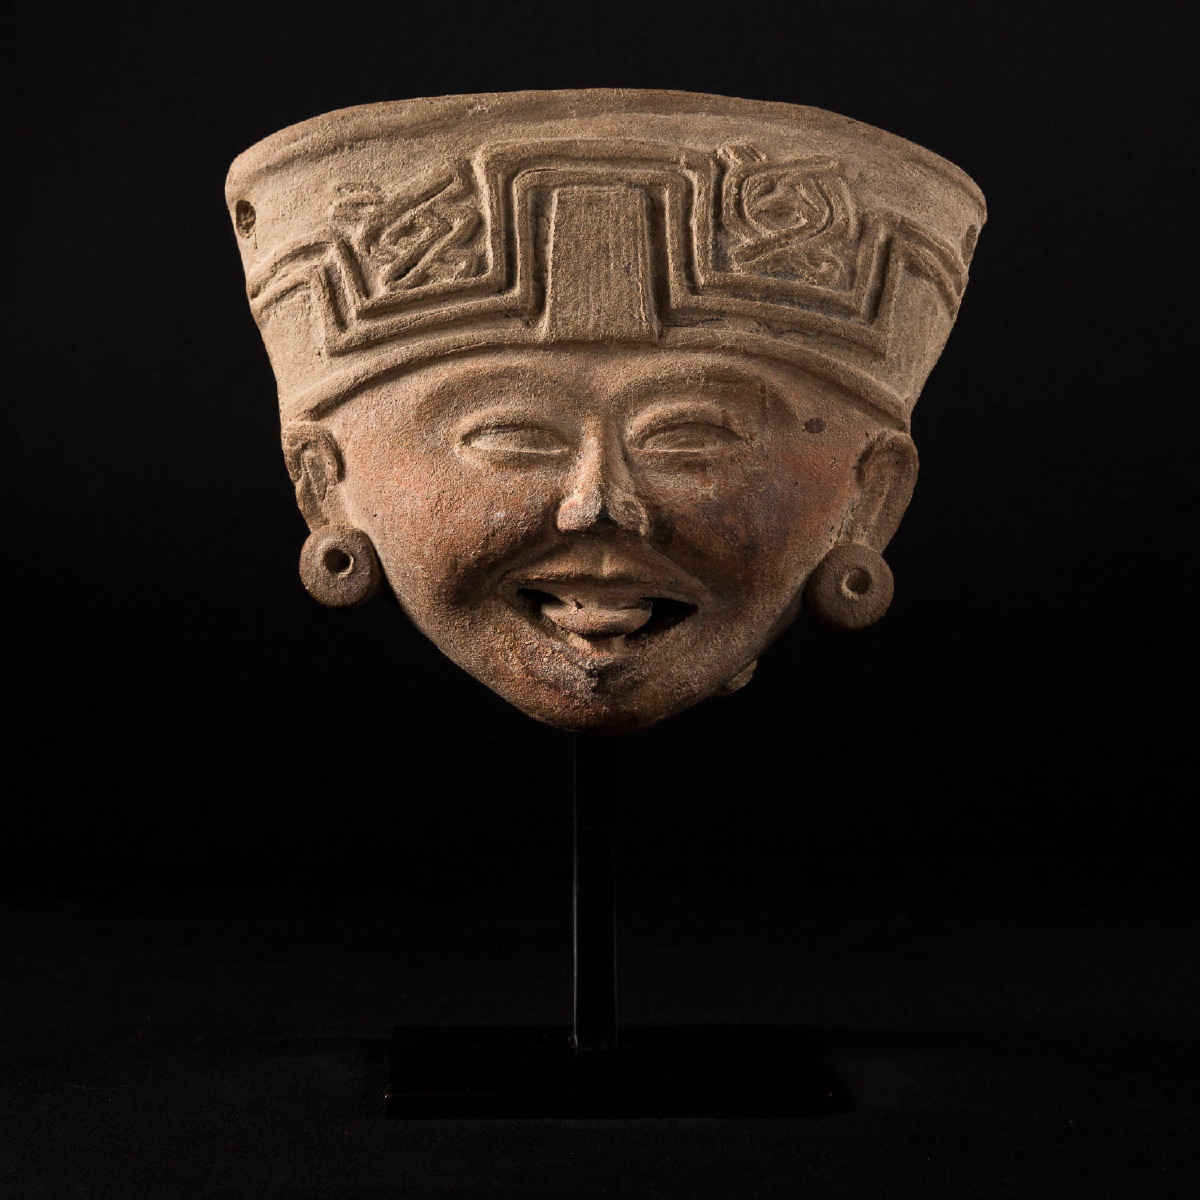 Photo of smiling-head-mexico-veracruz-musee-jcques-chirac-galerie-golconda